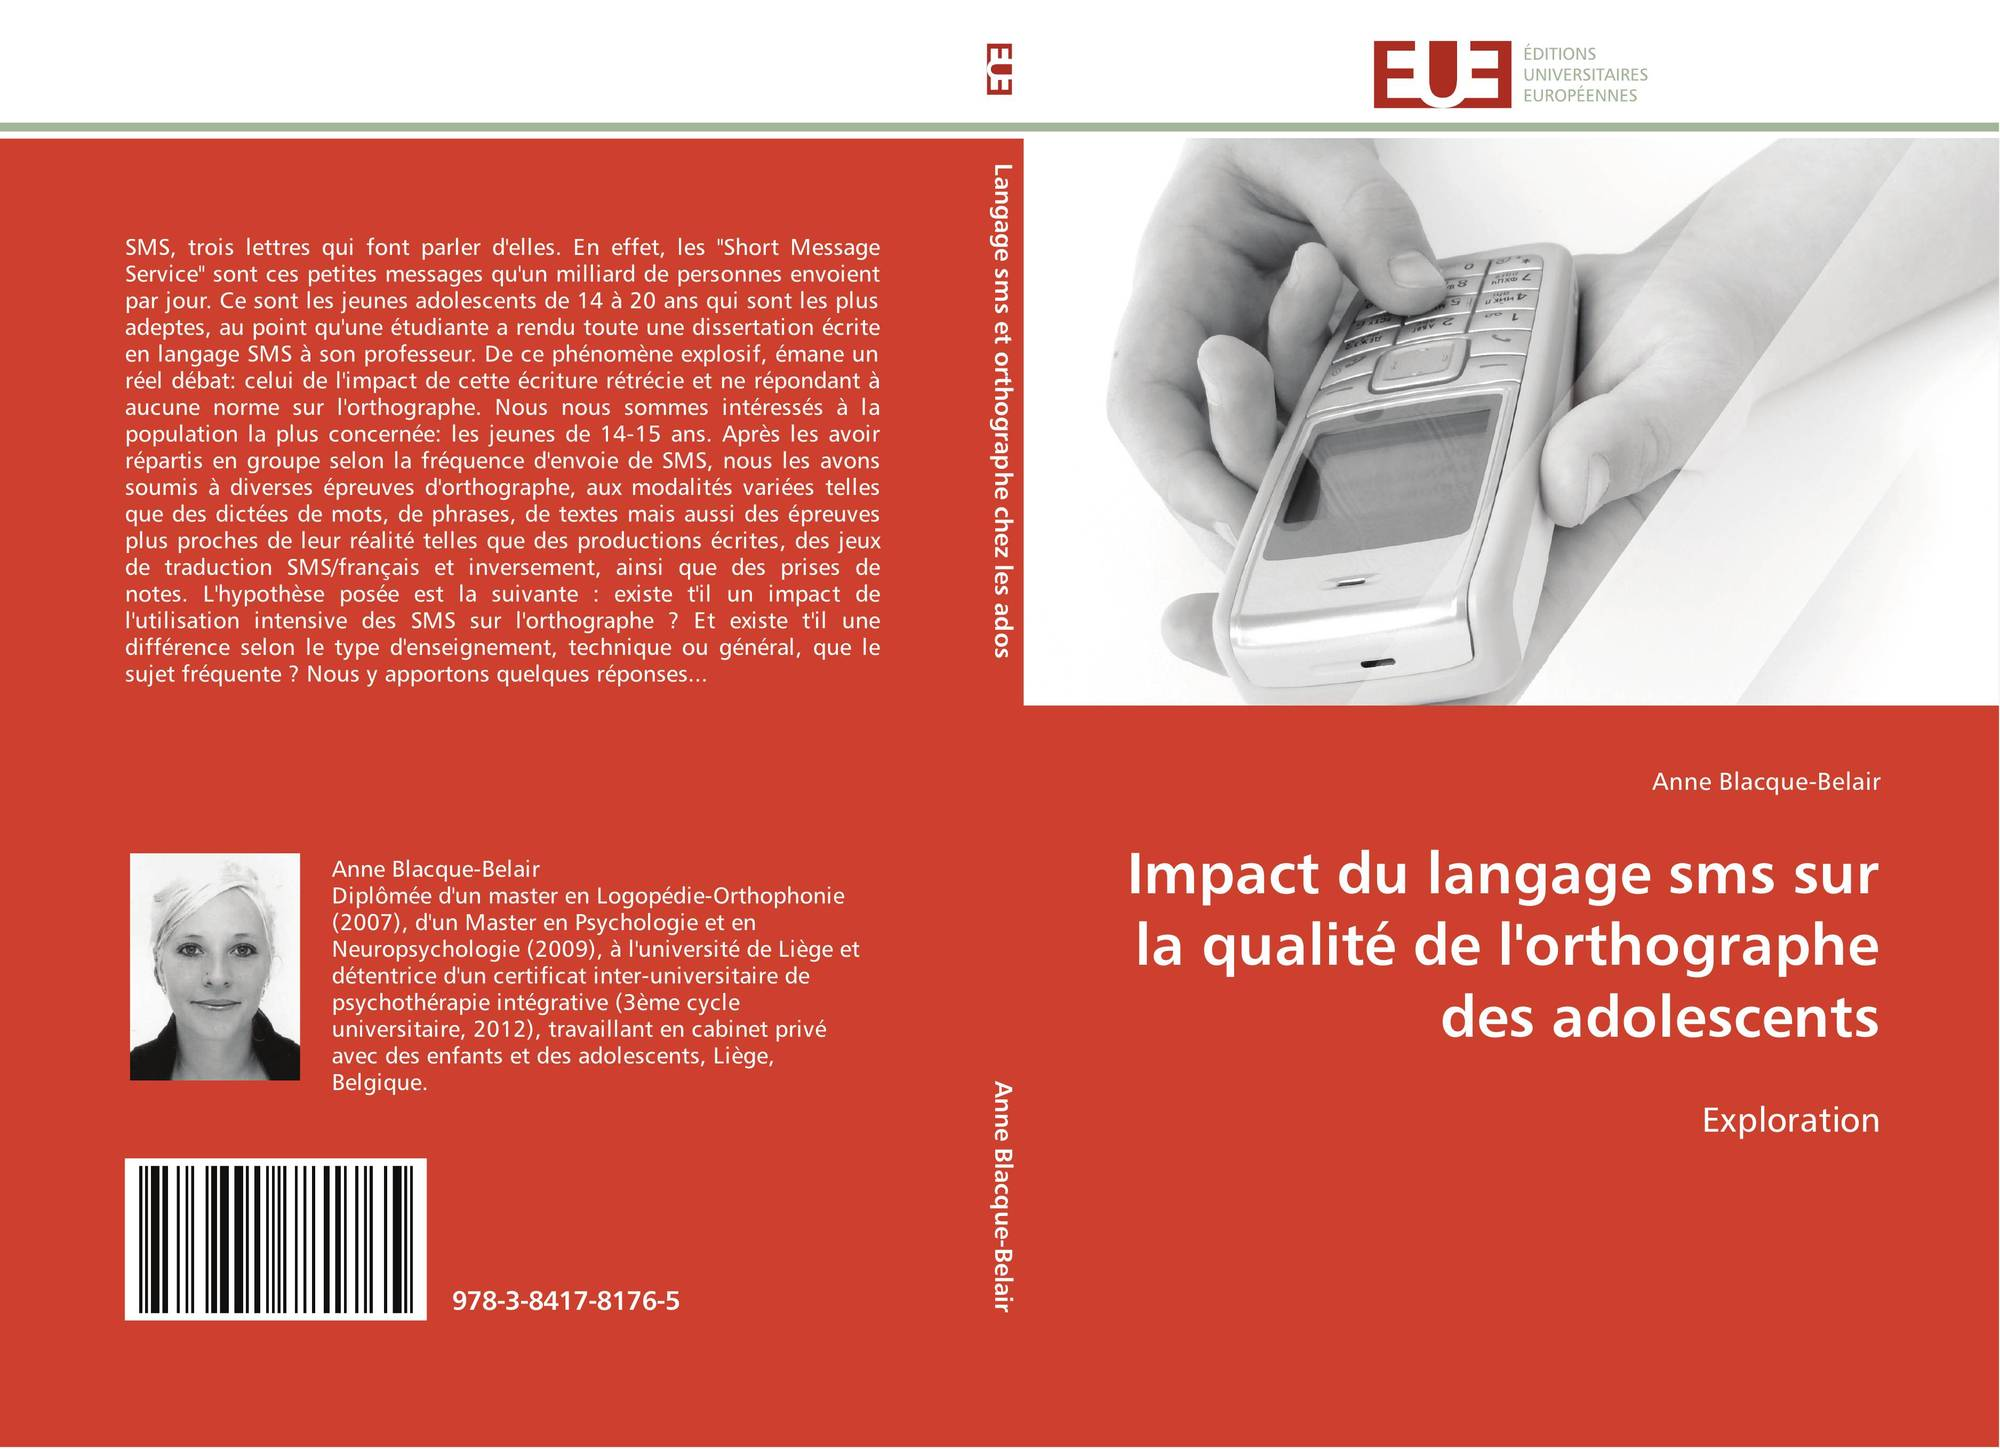 the impact of sms